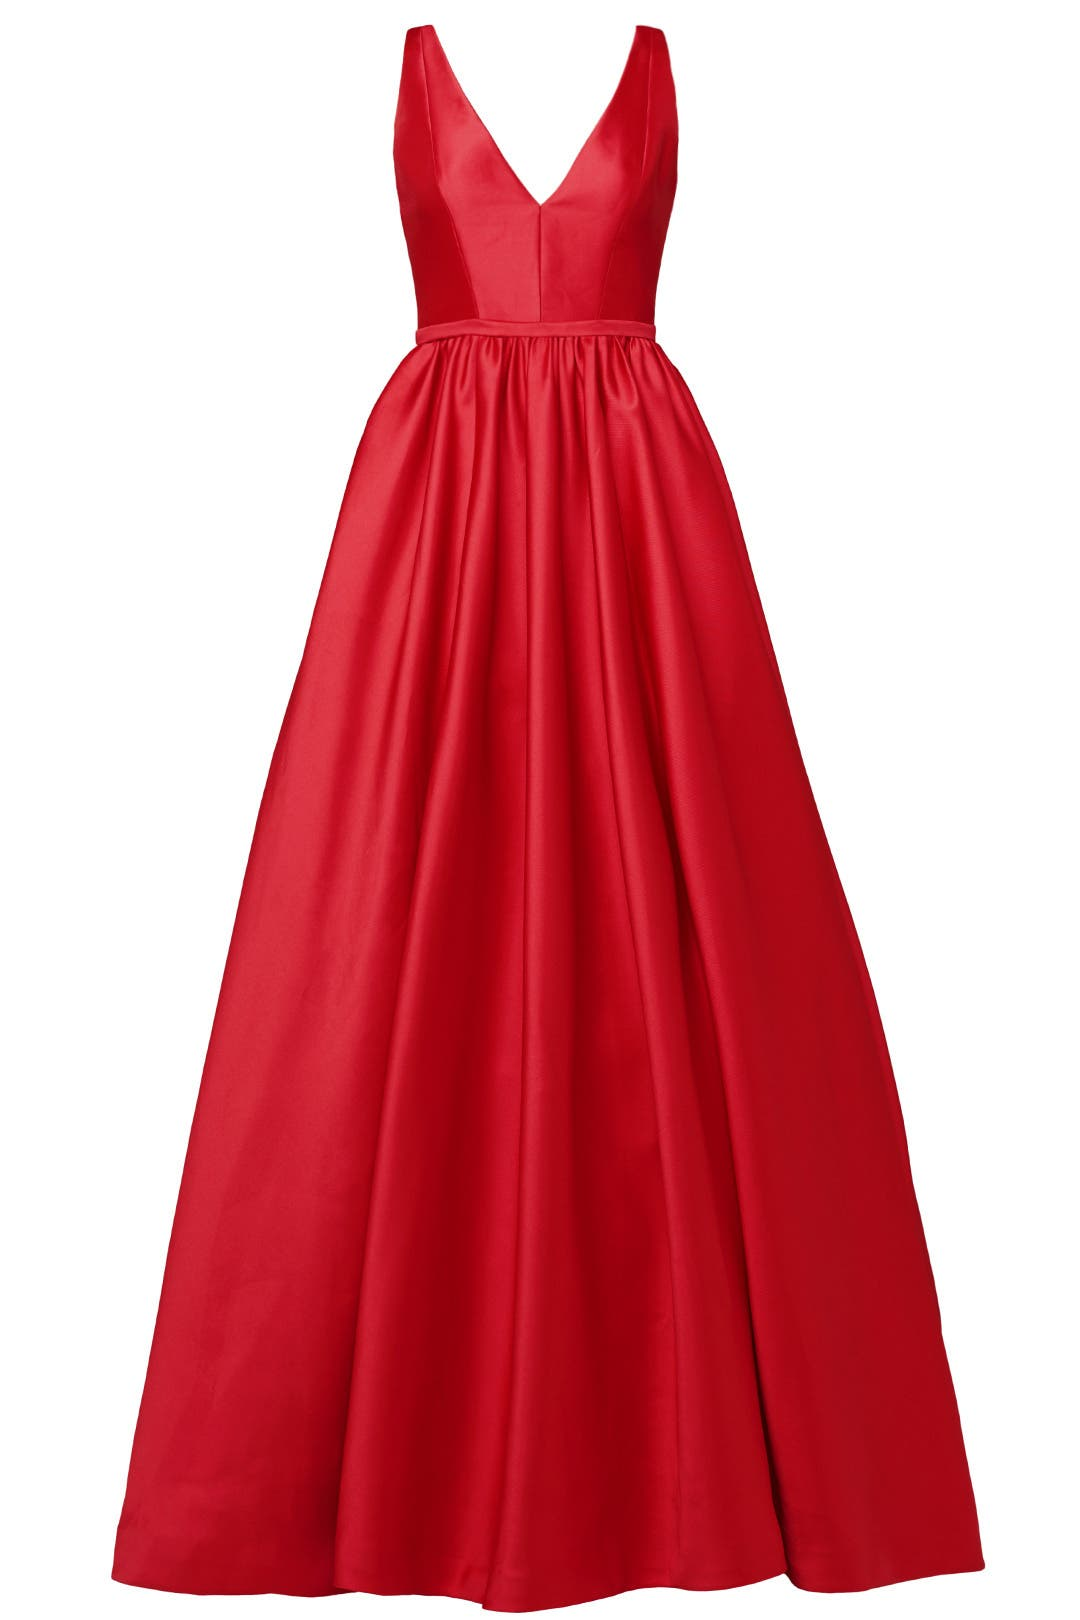 Pomegranate Gown by ML Monique Lhuillier for $131 | Rent the Runway